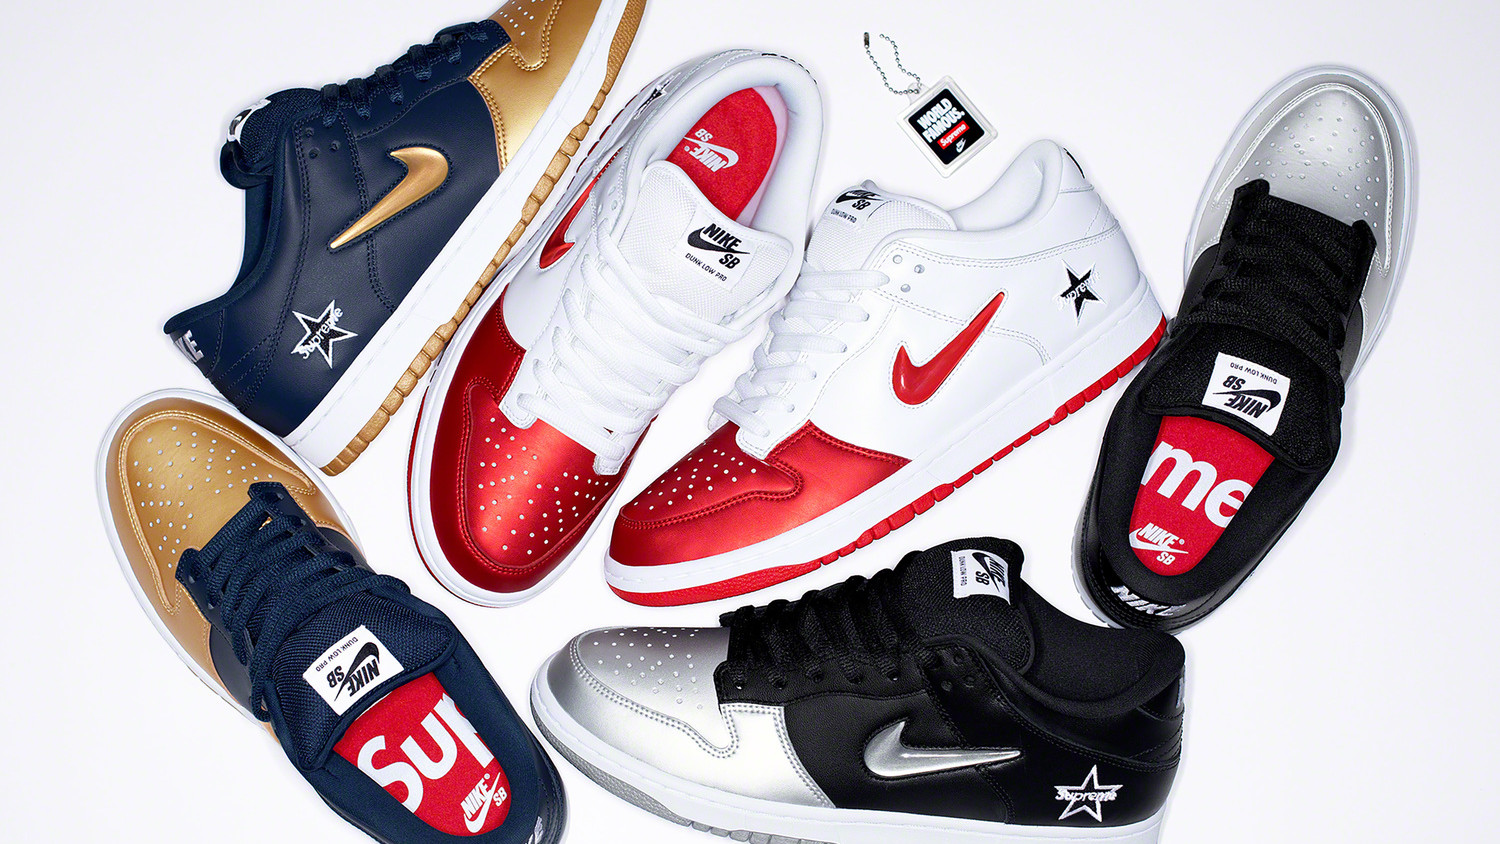 new appearance buy high fashion Supreme x Nike SB Dunk Low OG Release Date | Sole Collector